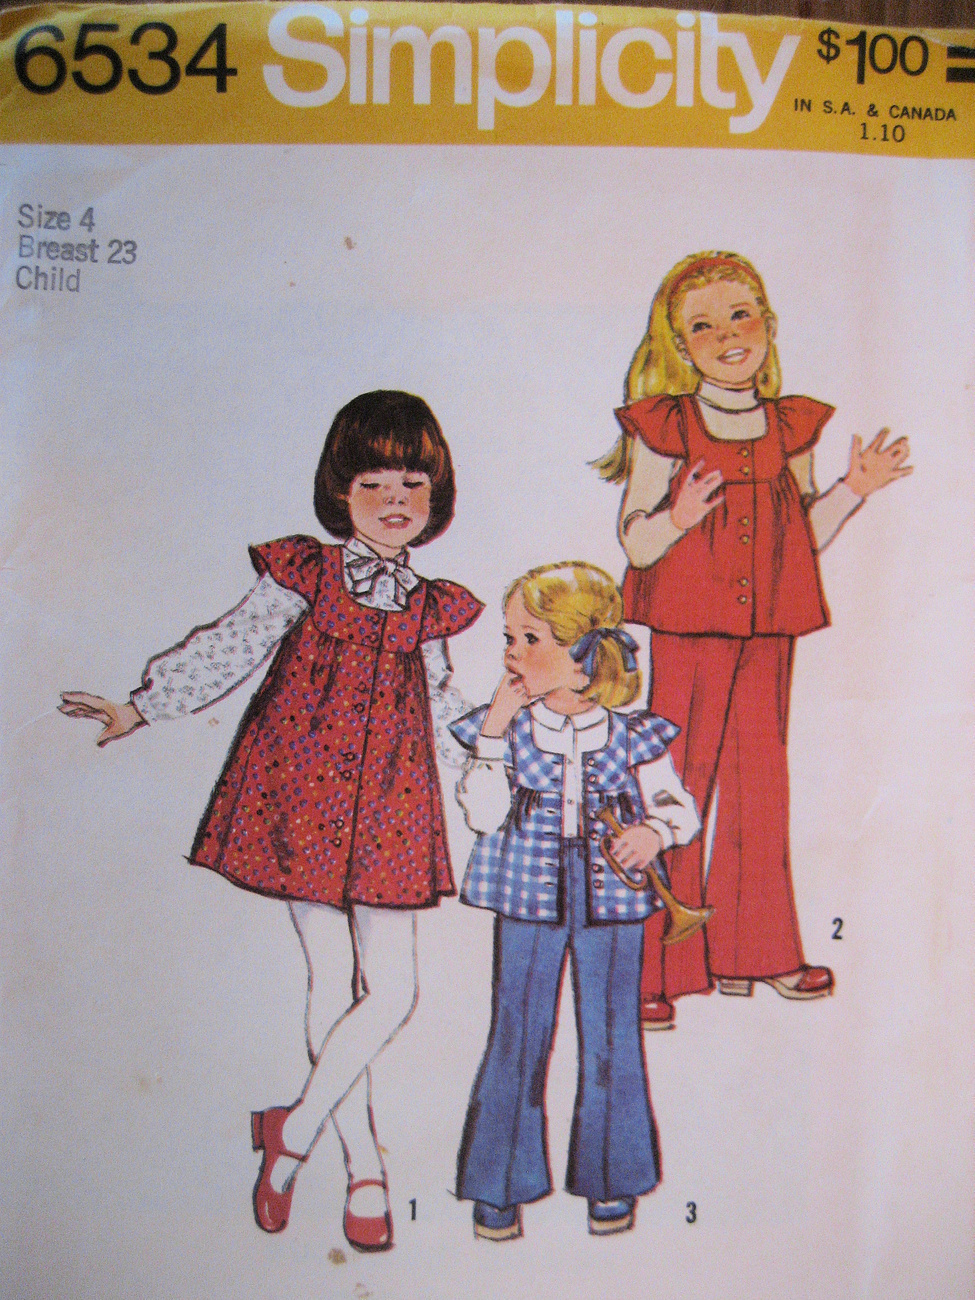 Primary image for Vintage 70s Sewing Pattern Unused Girls 4 Dress Top Pants S6